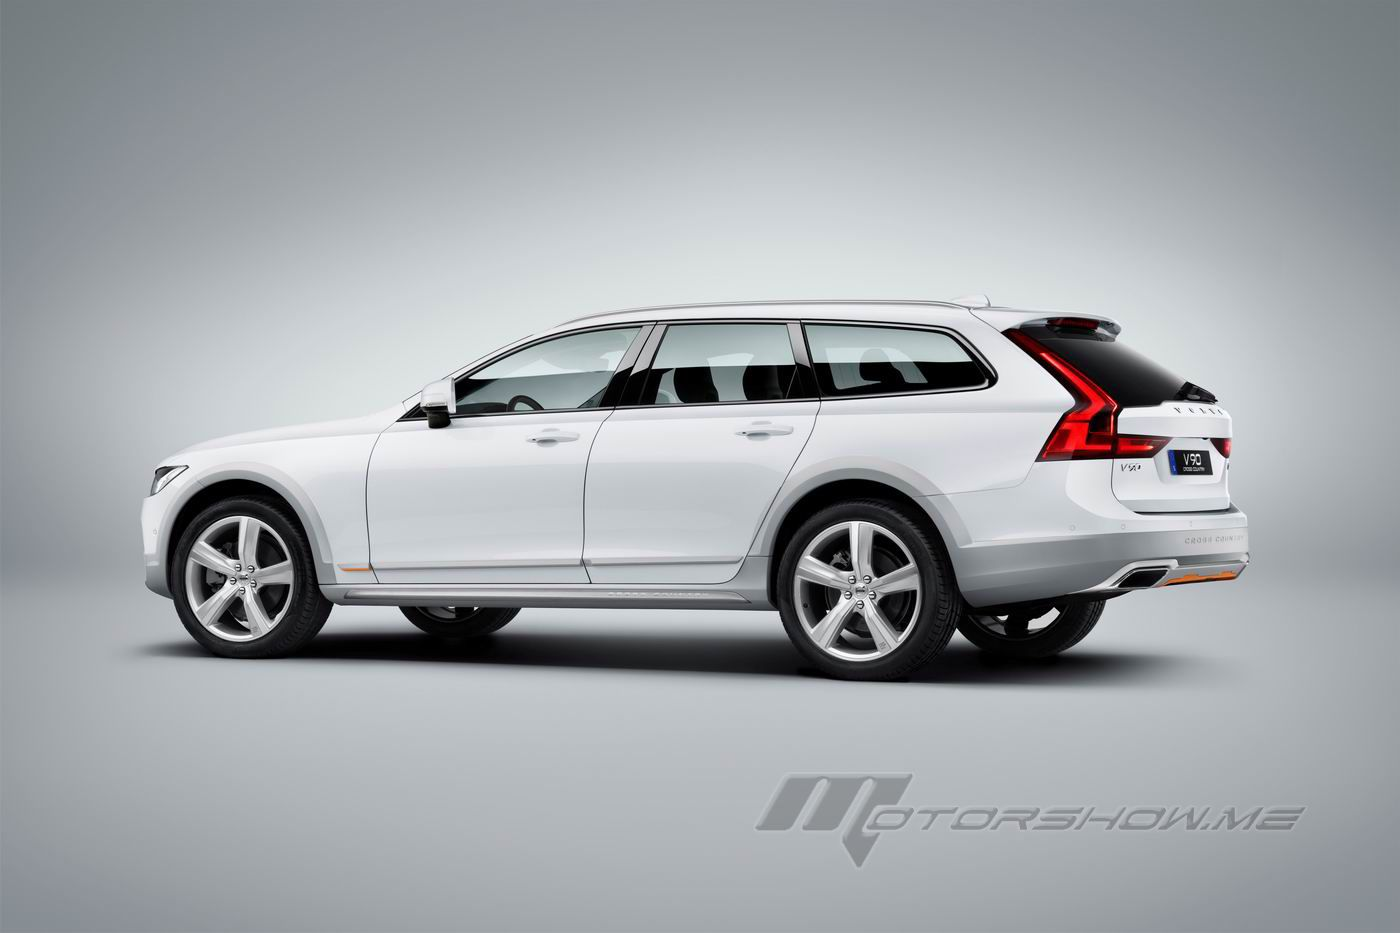 photo chicago a live blue volvo wagon in polestar is news